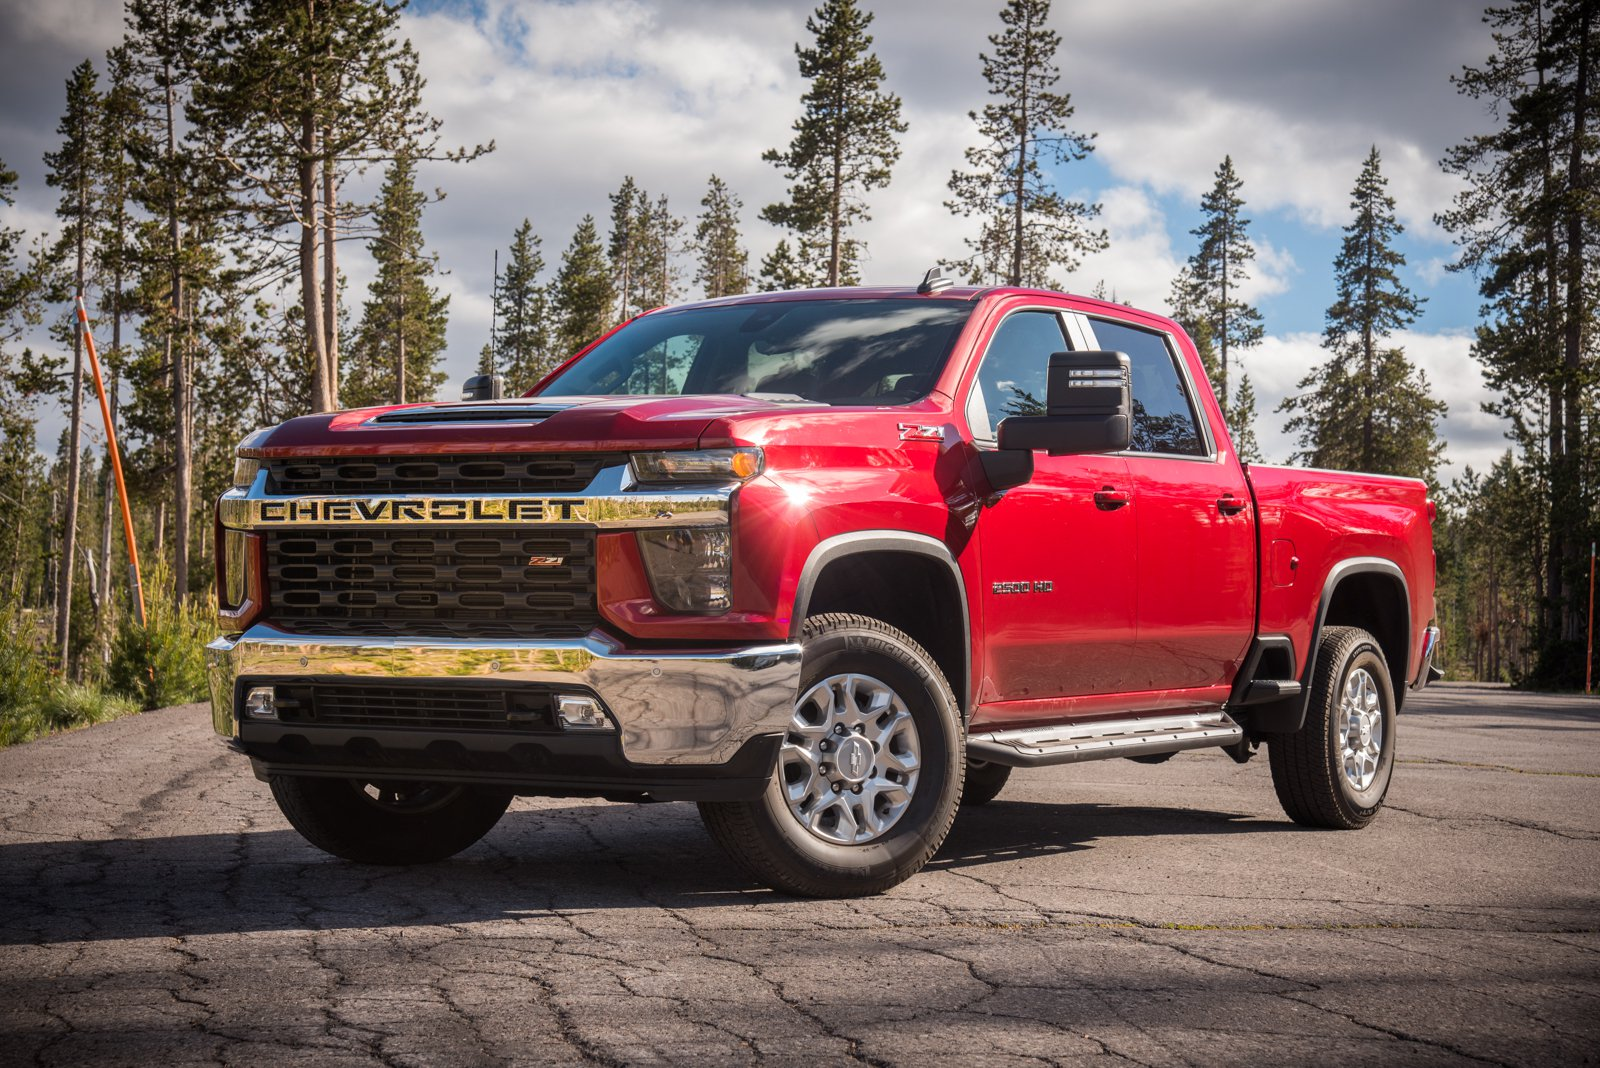 Electric Department to get new Chevrolet Silverado 2500HD ...